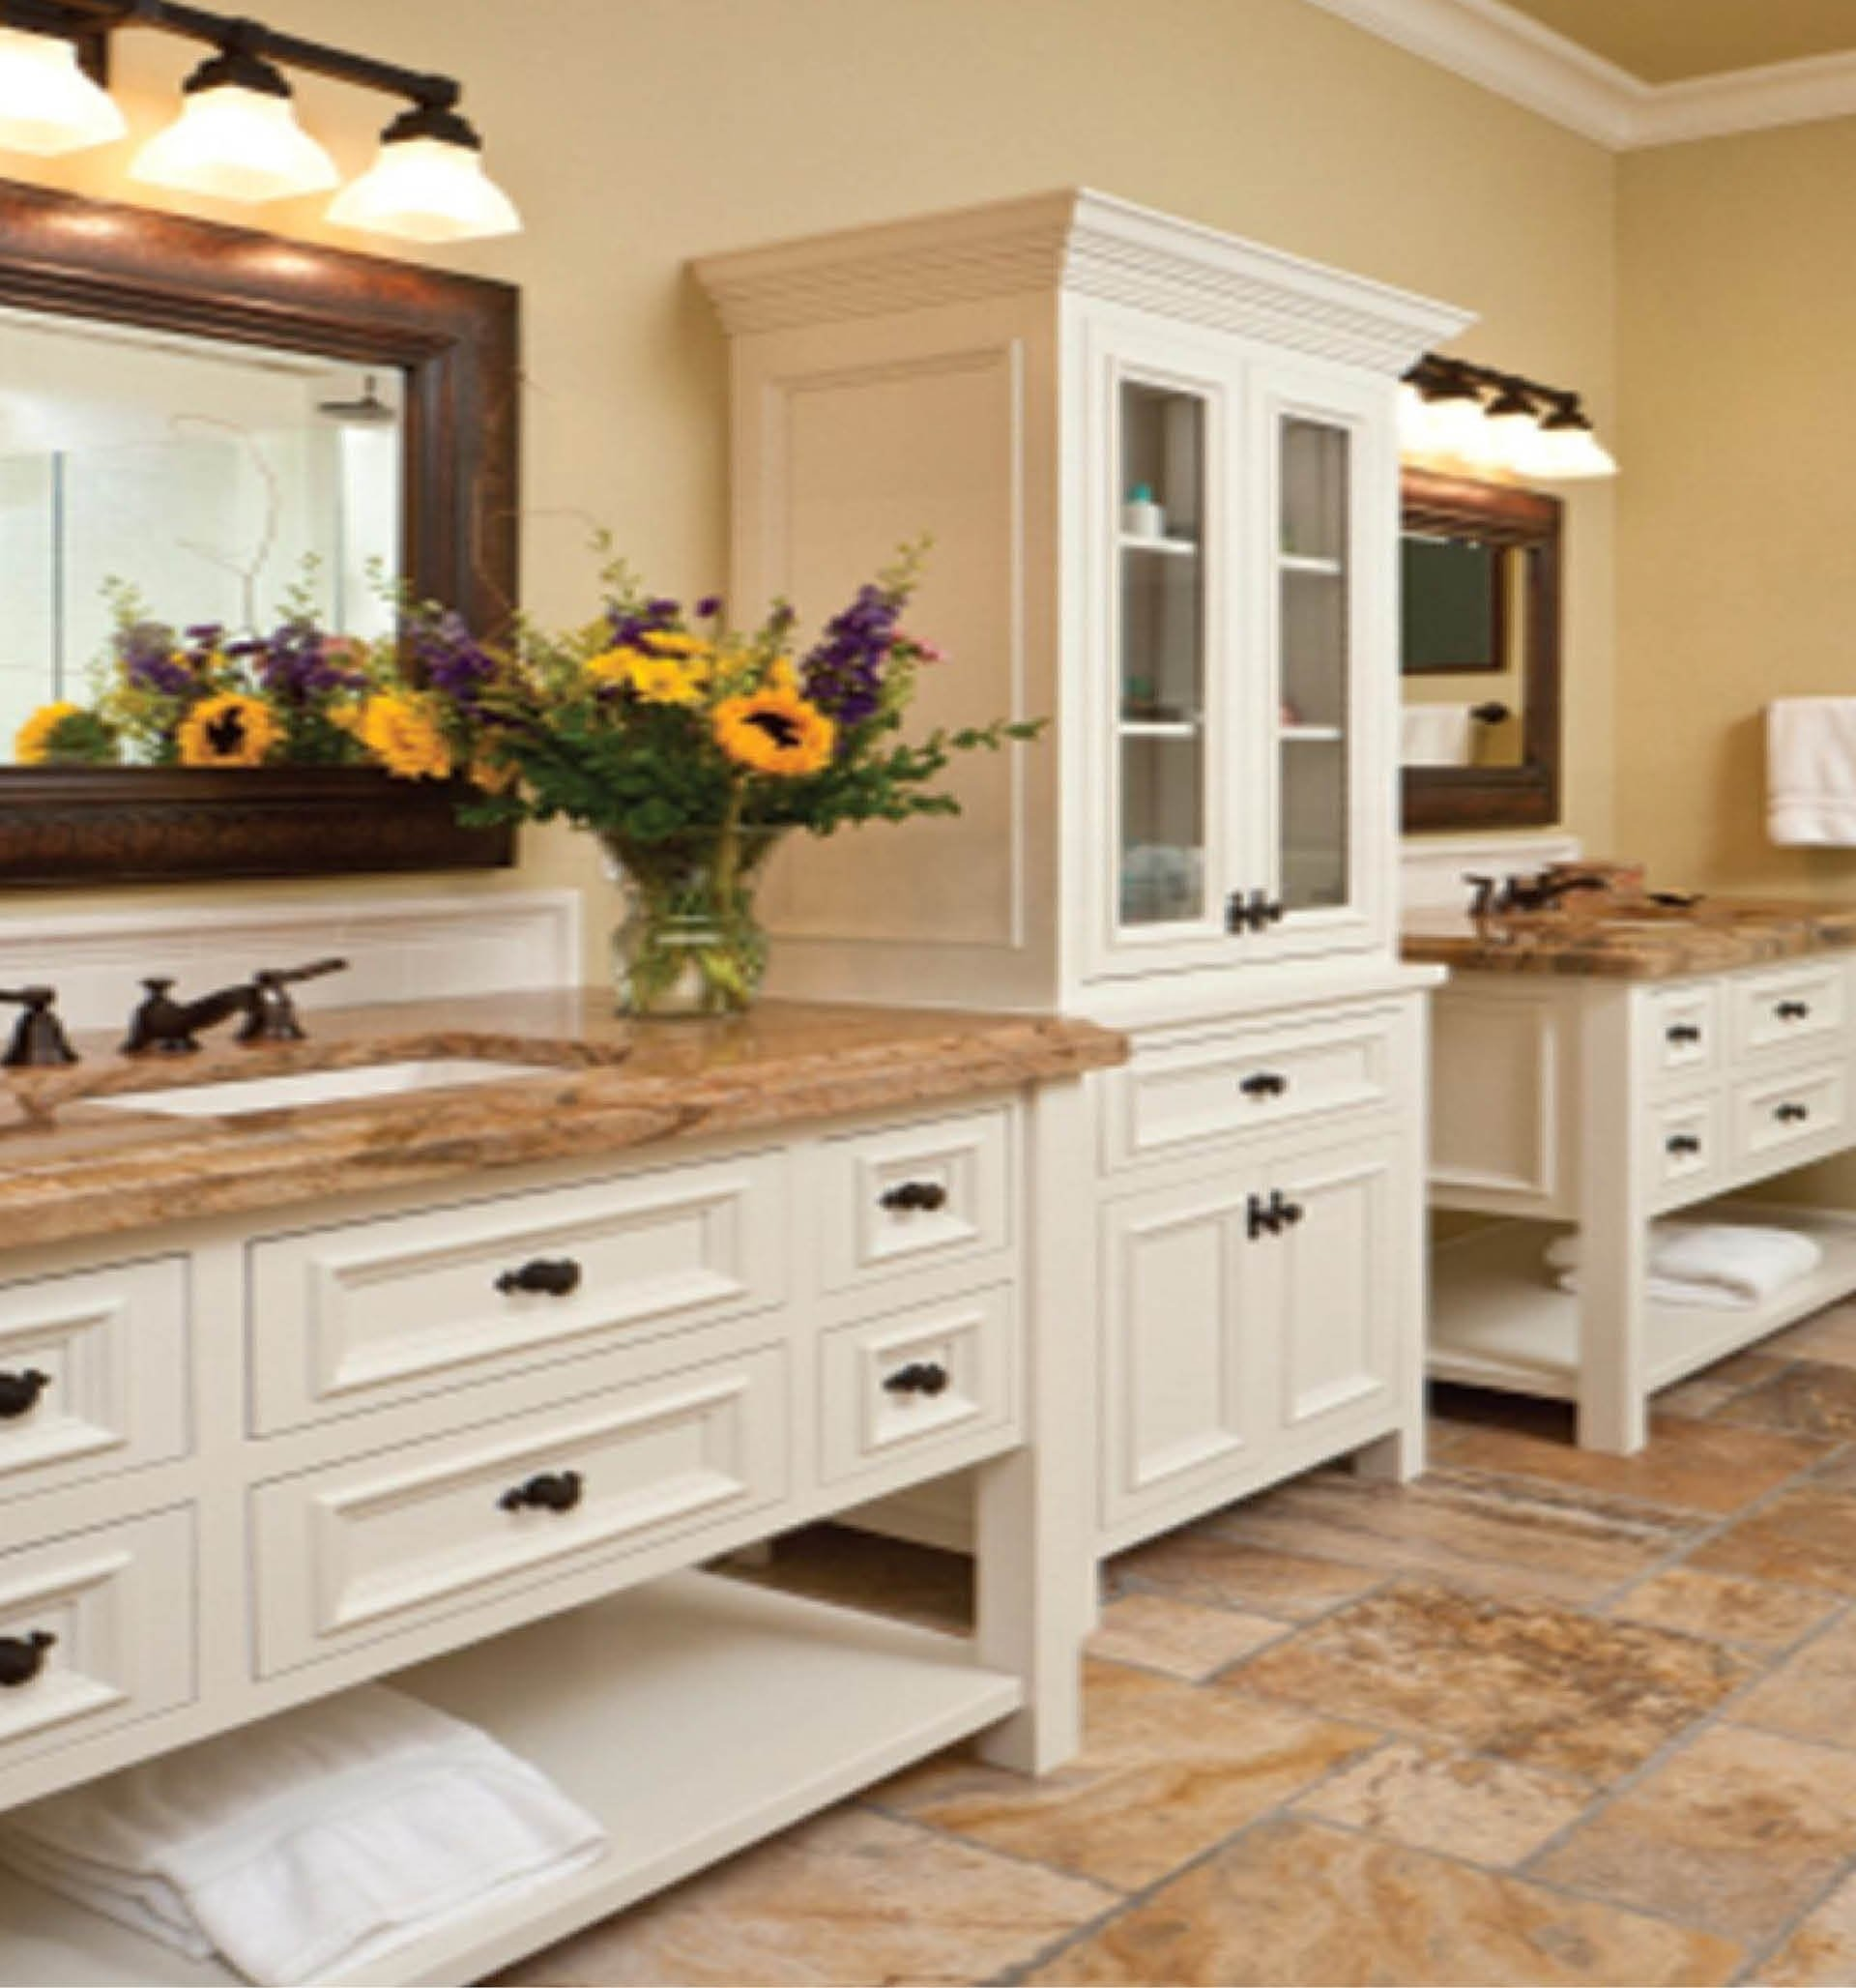 10 Spectacular Kitchen Countertop Ideas With White Cabinets black countertops with white cabinets decobizz 2020